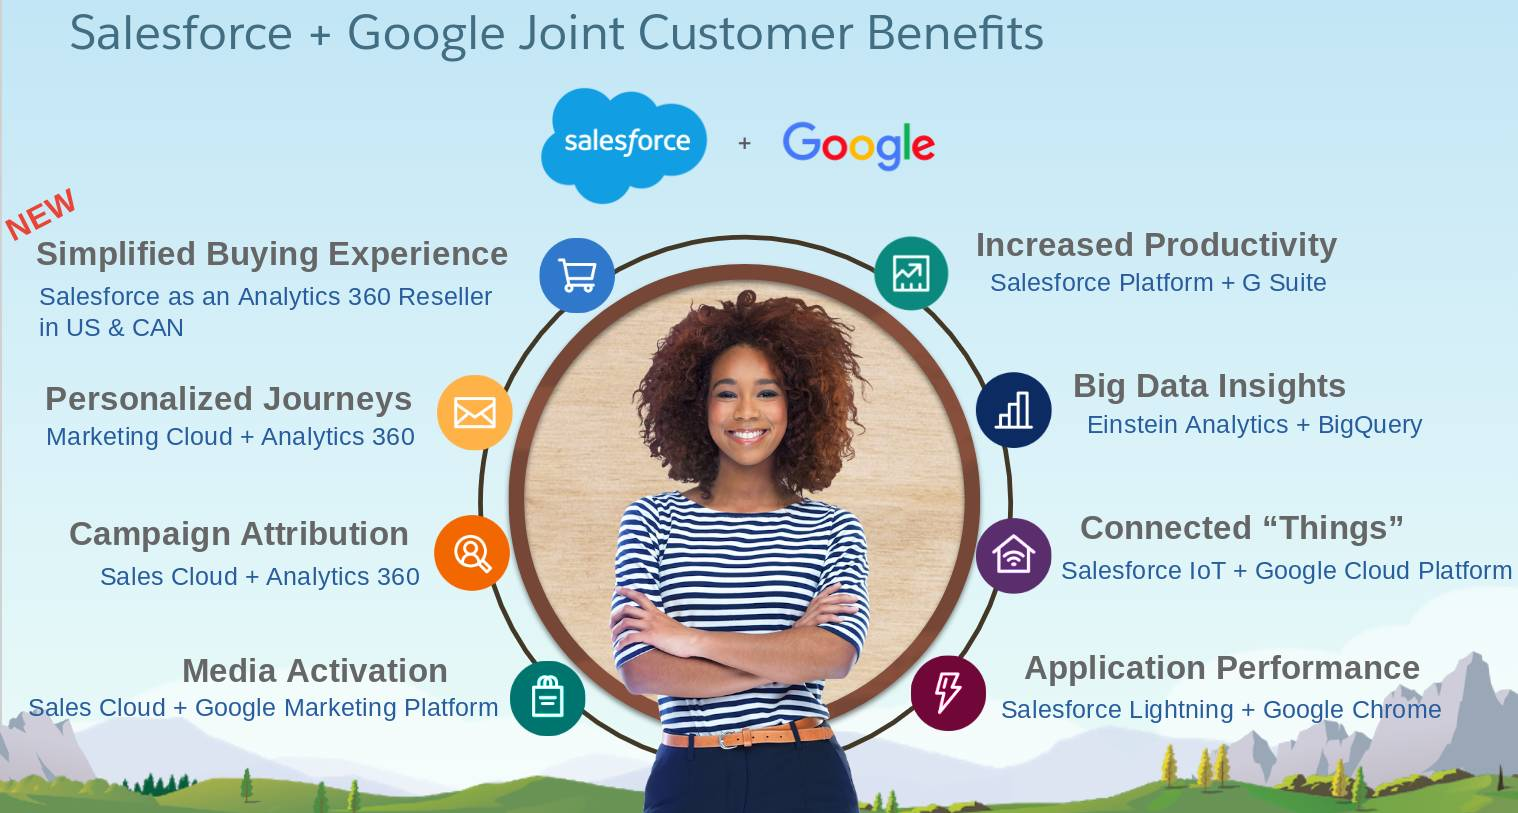 """The Salesforce and Google Joint Customer Benefits include Increased Productivity, Big Data Insights, Connected """"Things,"""" Application Performance, Media Activation, Campaign Attribution, Personalized Journeys, and a Simplified Buying Experience."""